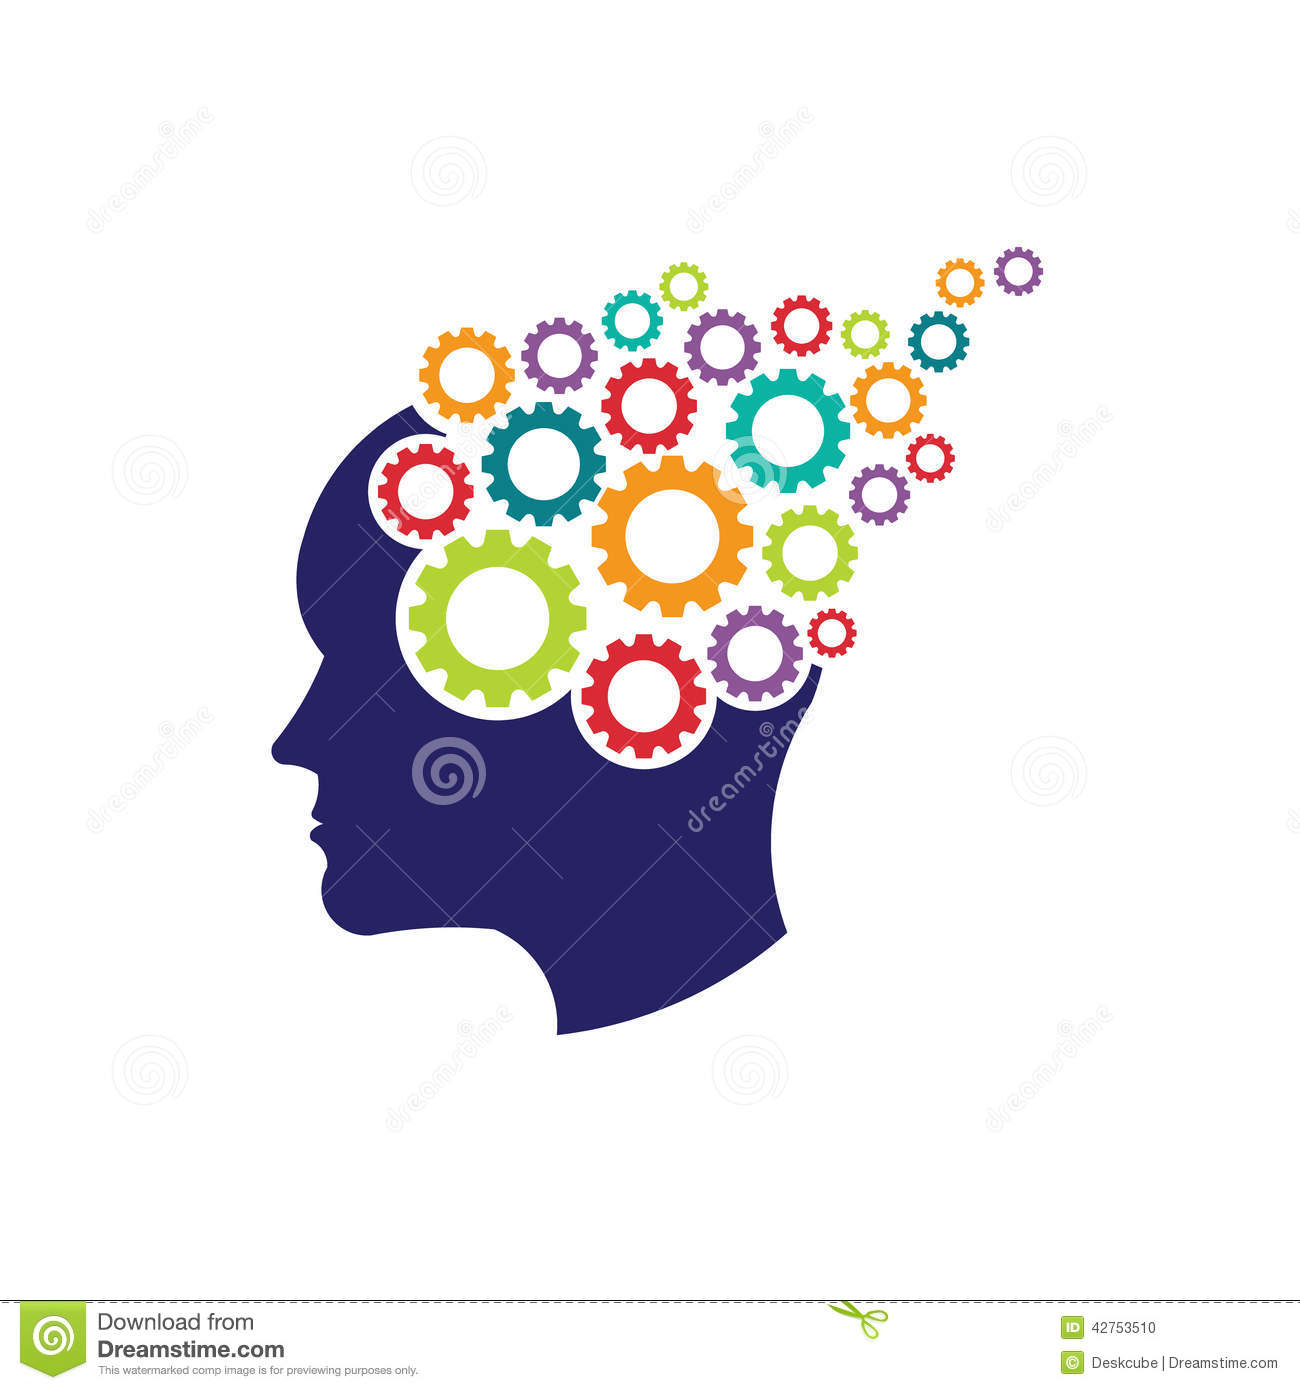 Concept Of Brain Head With Gears Logo Stock Vector - Image ...